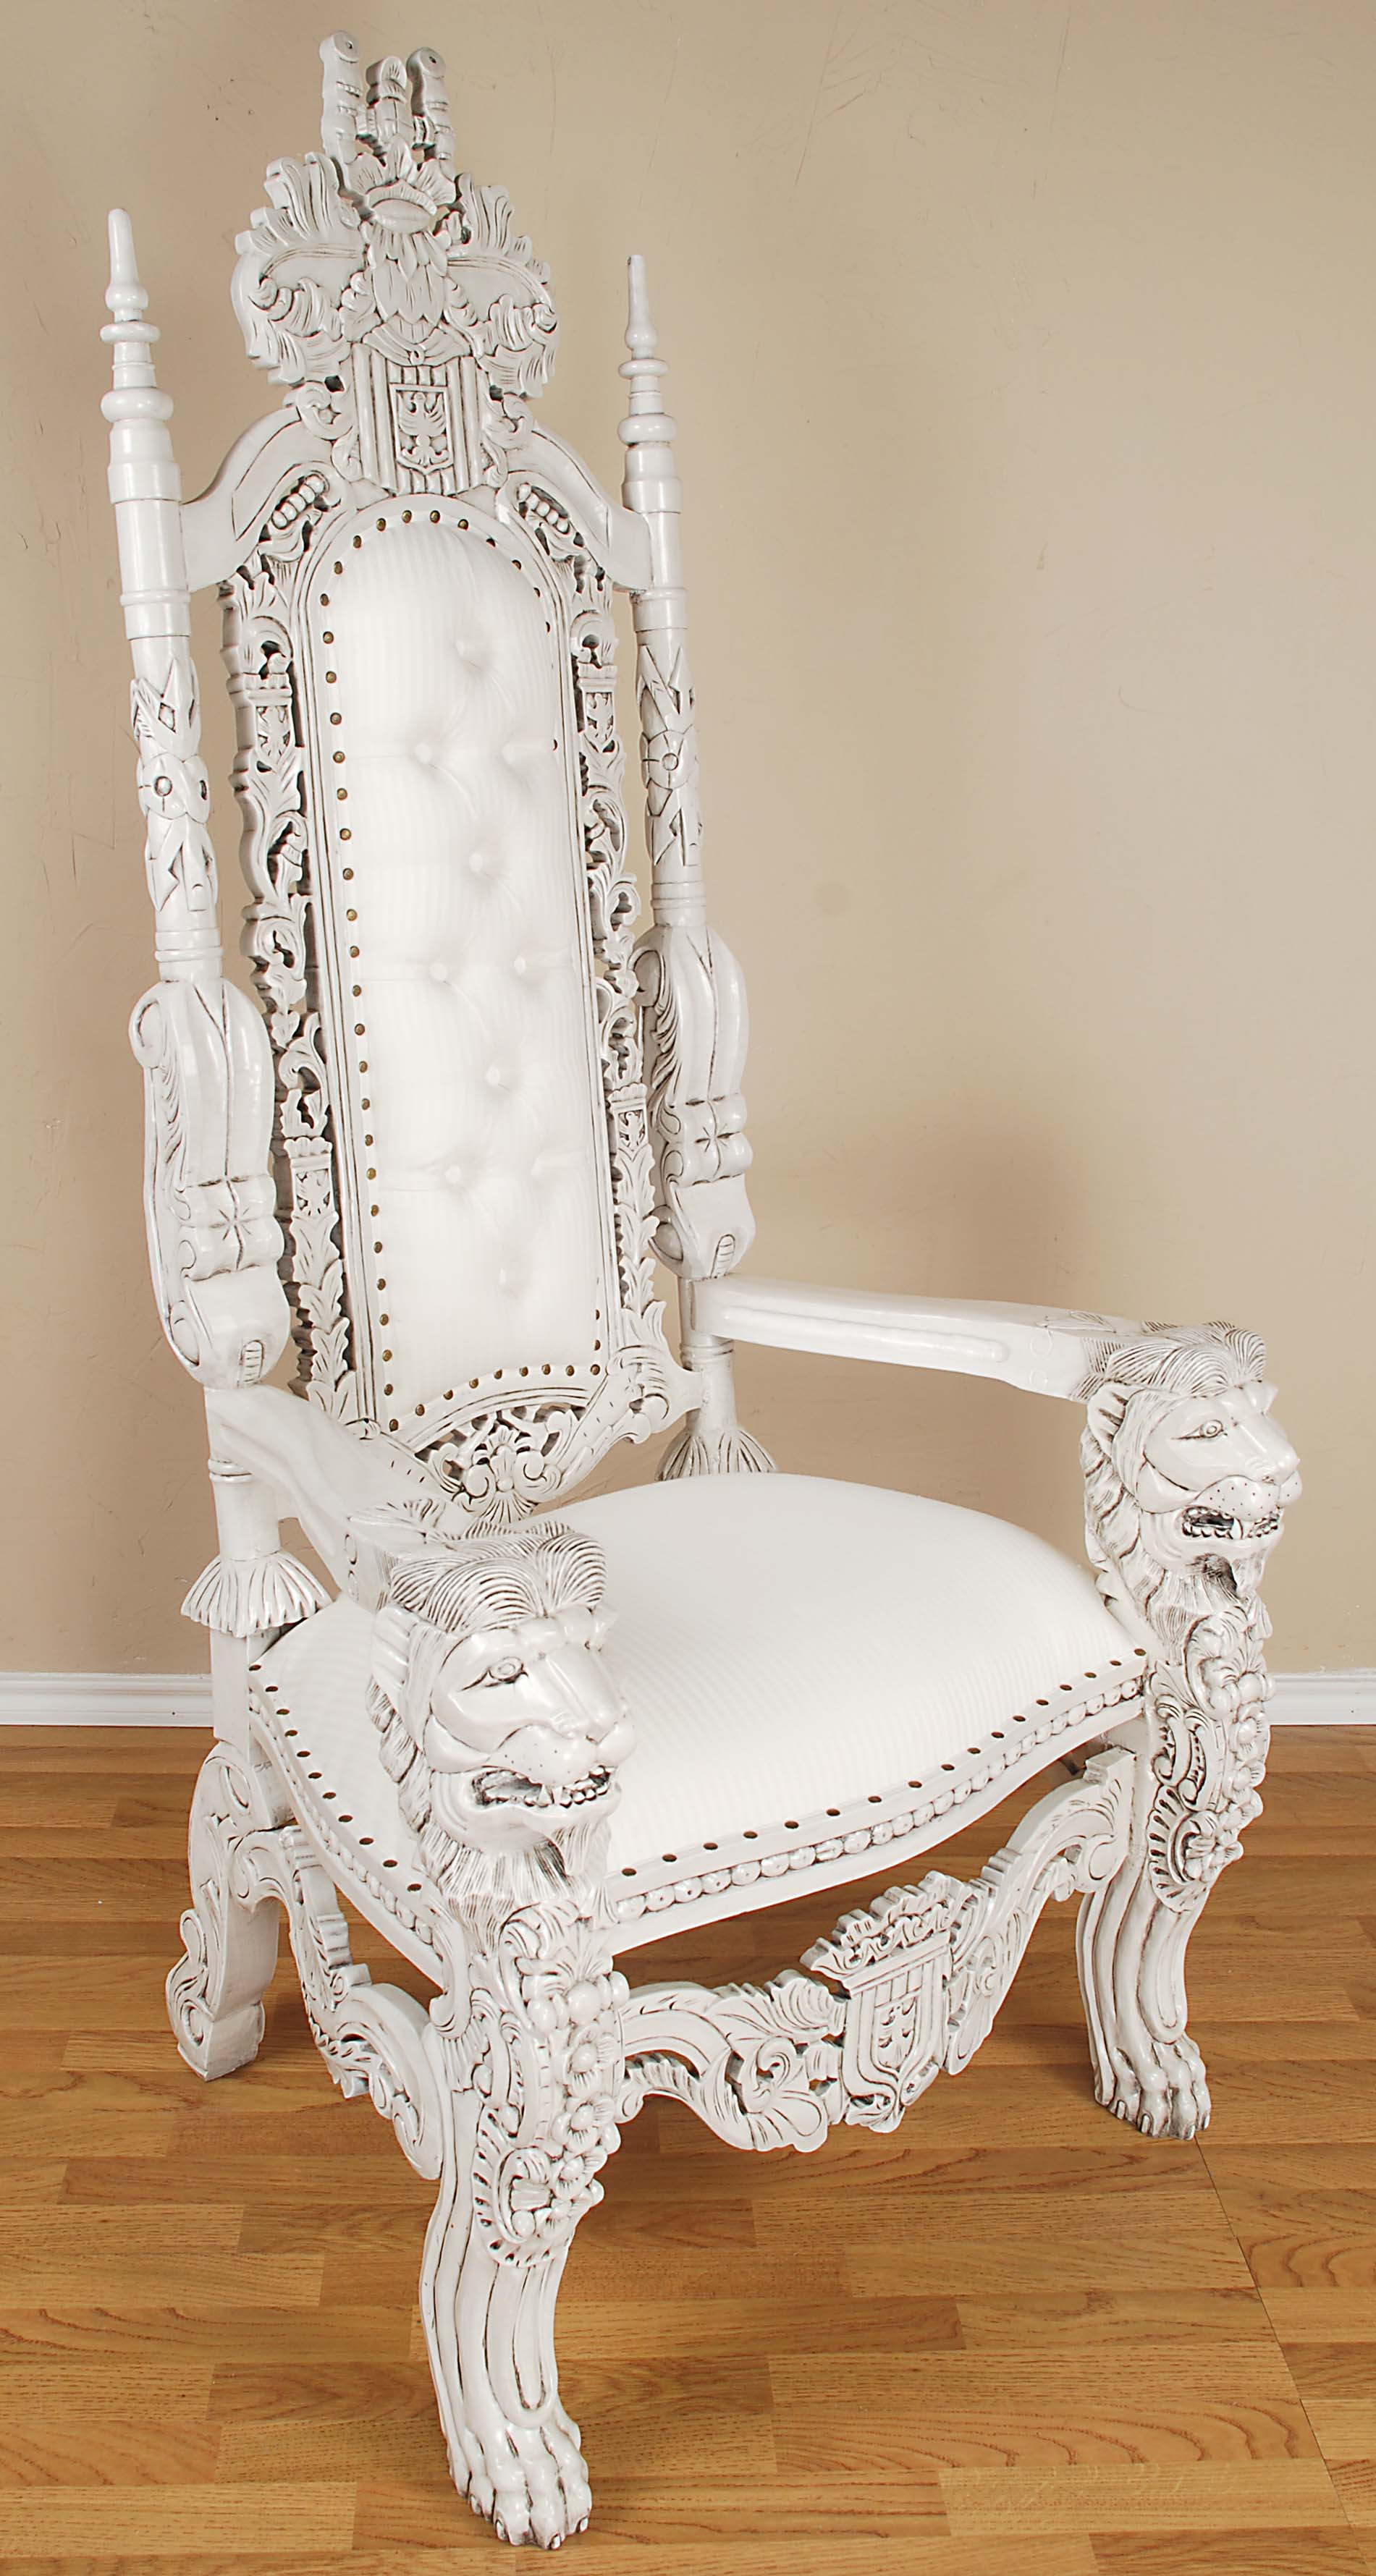 kings chair for sale covers & linens john r road madison heights mi queen throne